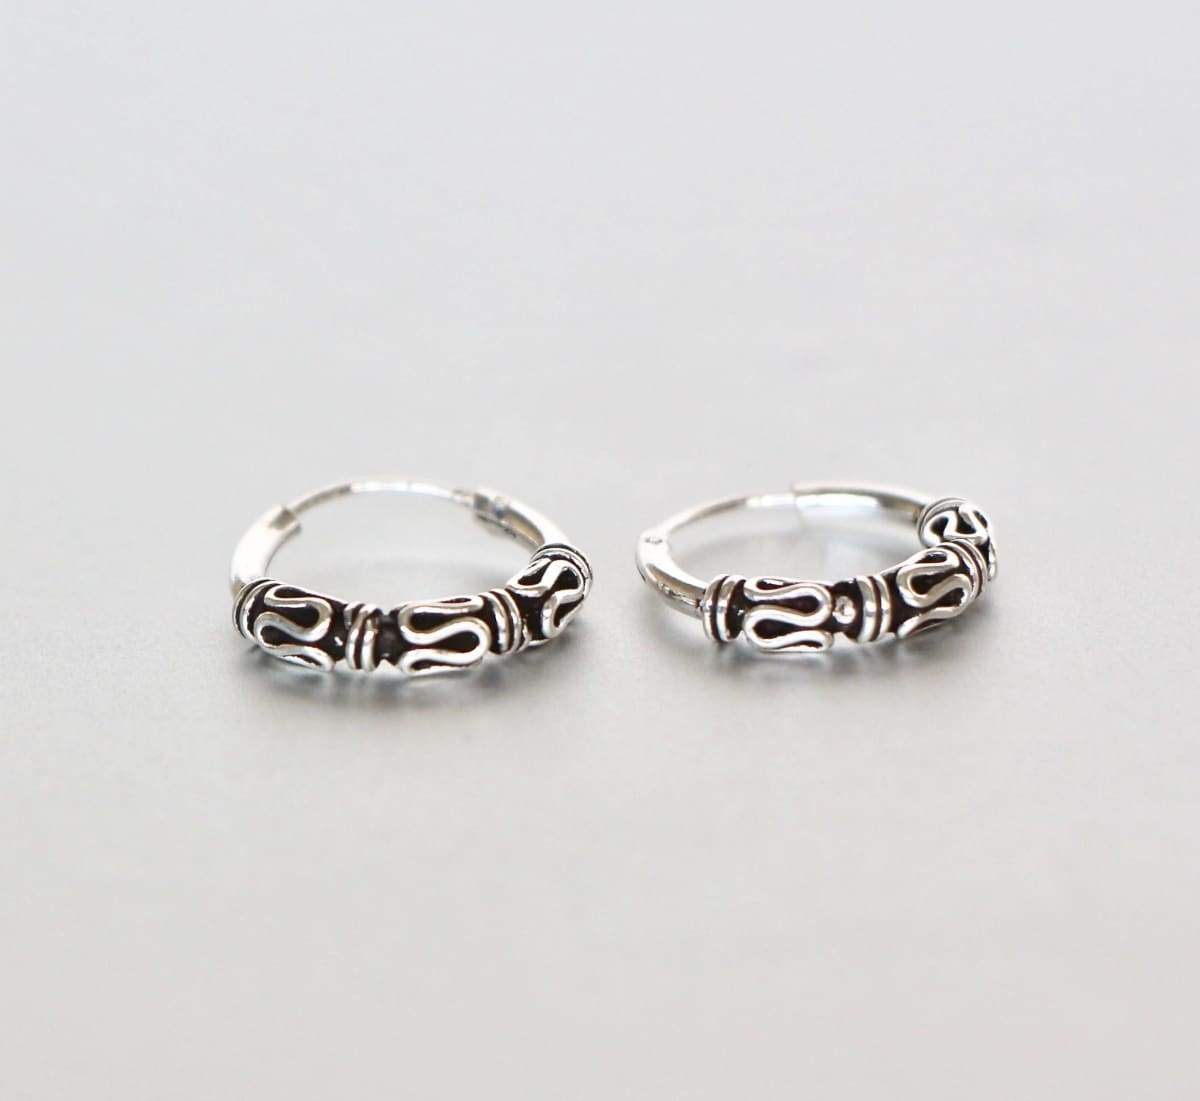 Earrings Silver Ear Hoops 14 mm Bali Oxidized Hoop Indi Style Bohemian Minimal Casual BohoChic (E43)